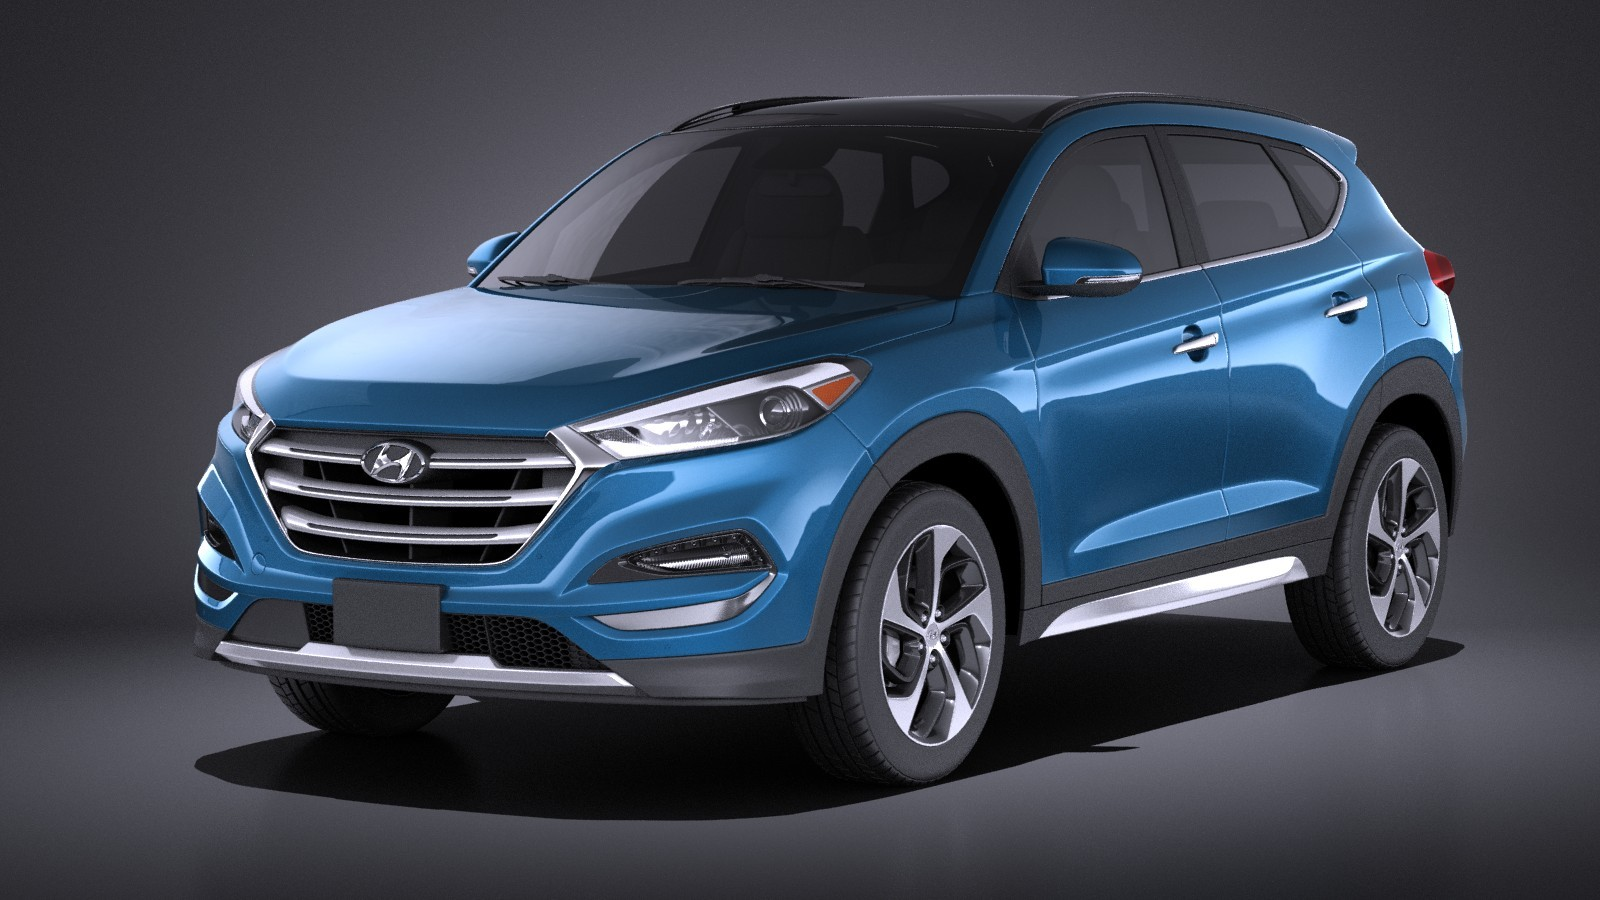 Hyundai Tucson Specifications, Price, Mileage, Pics, Review